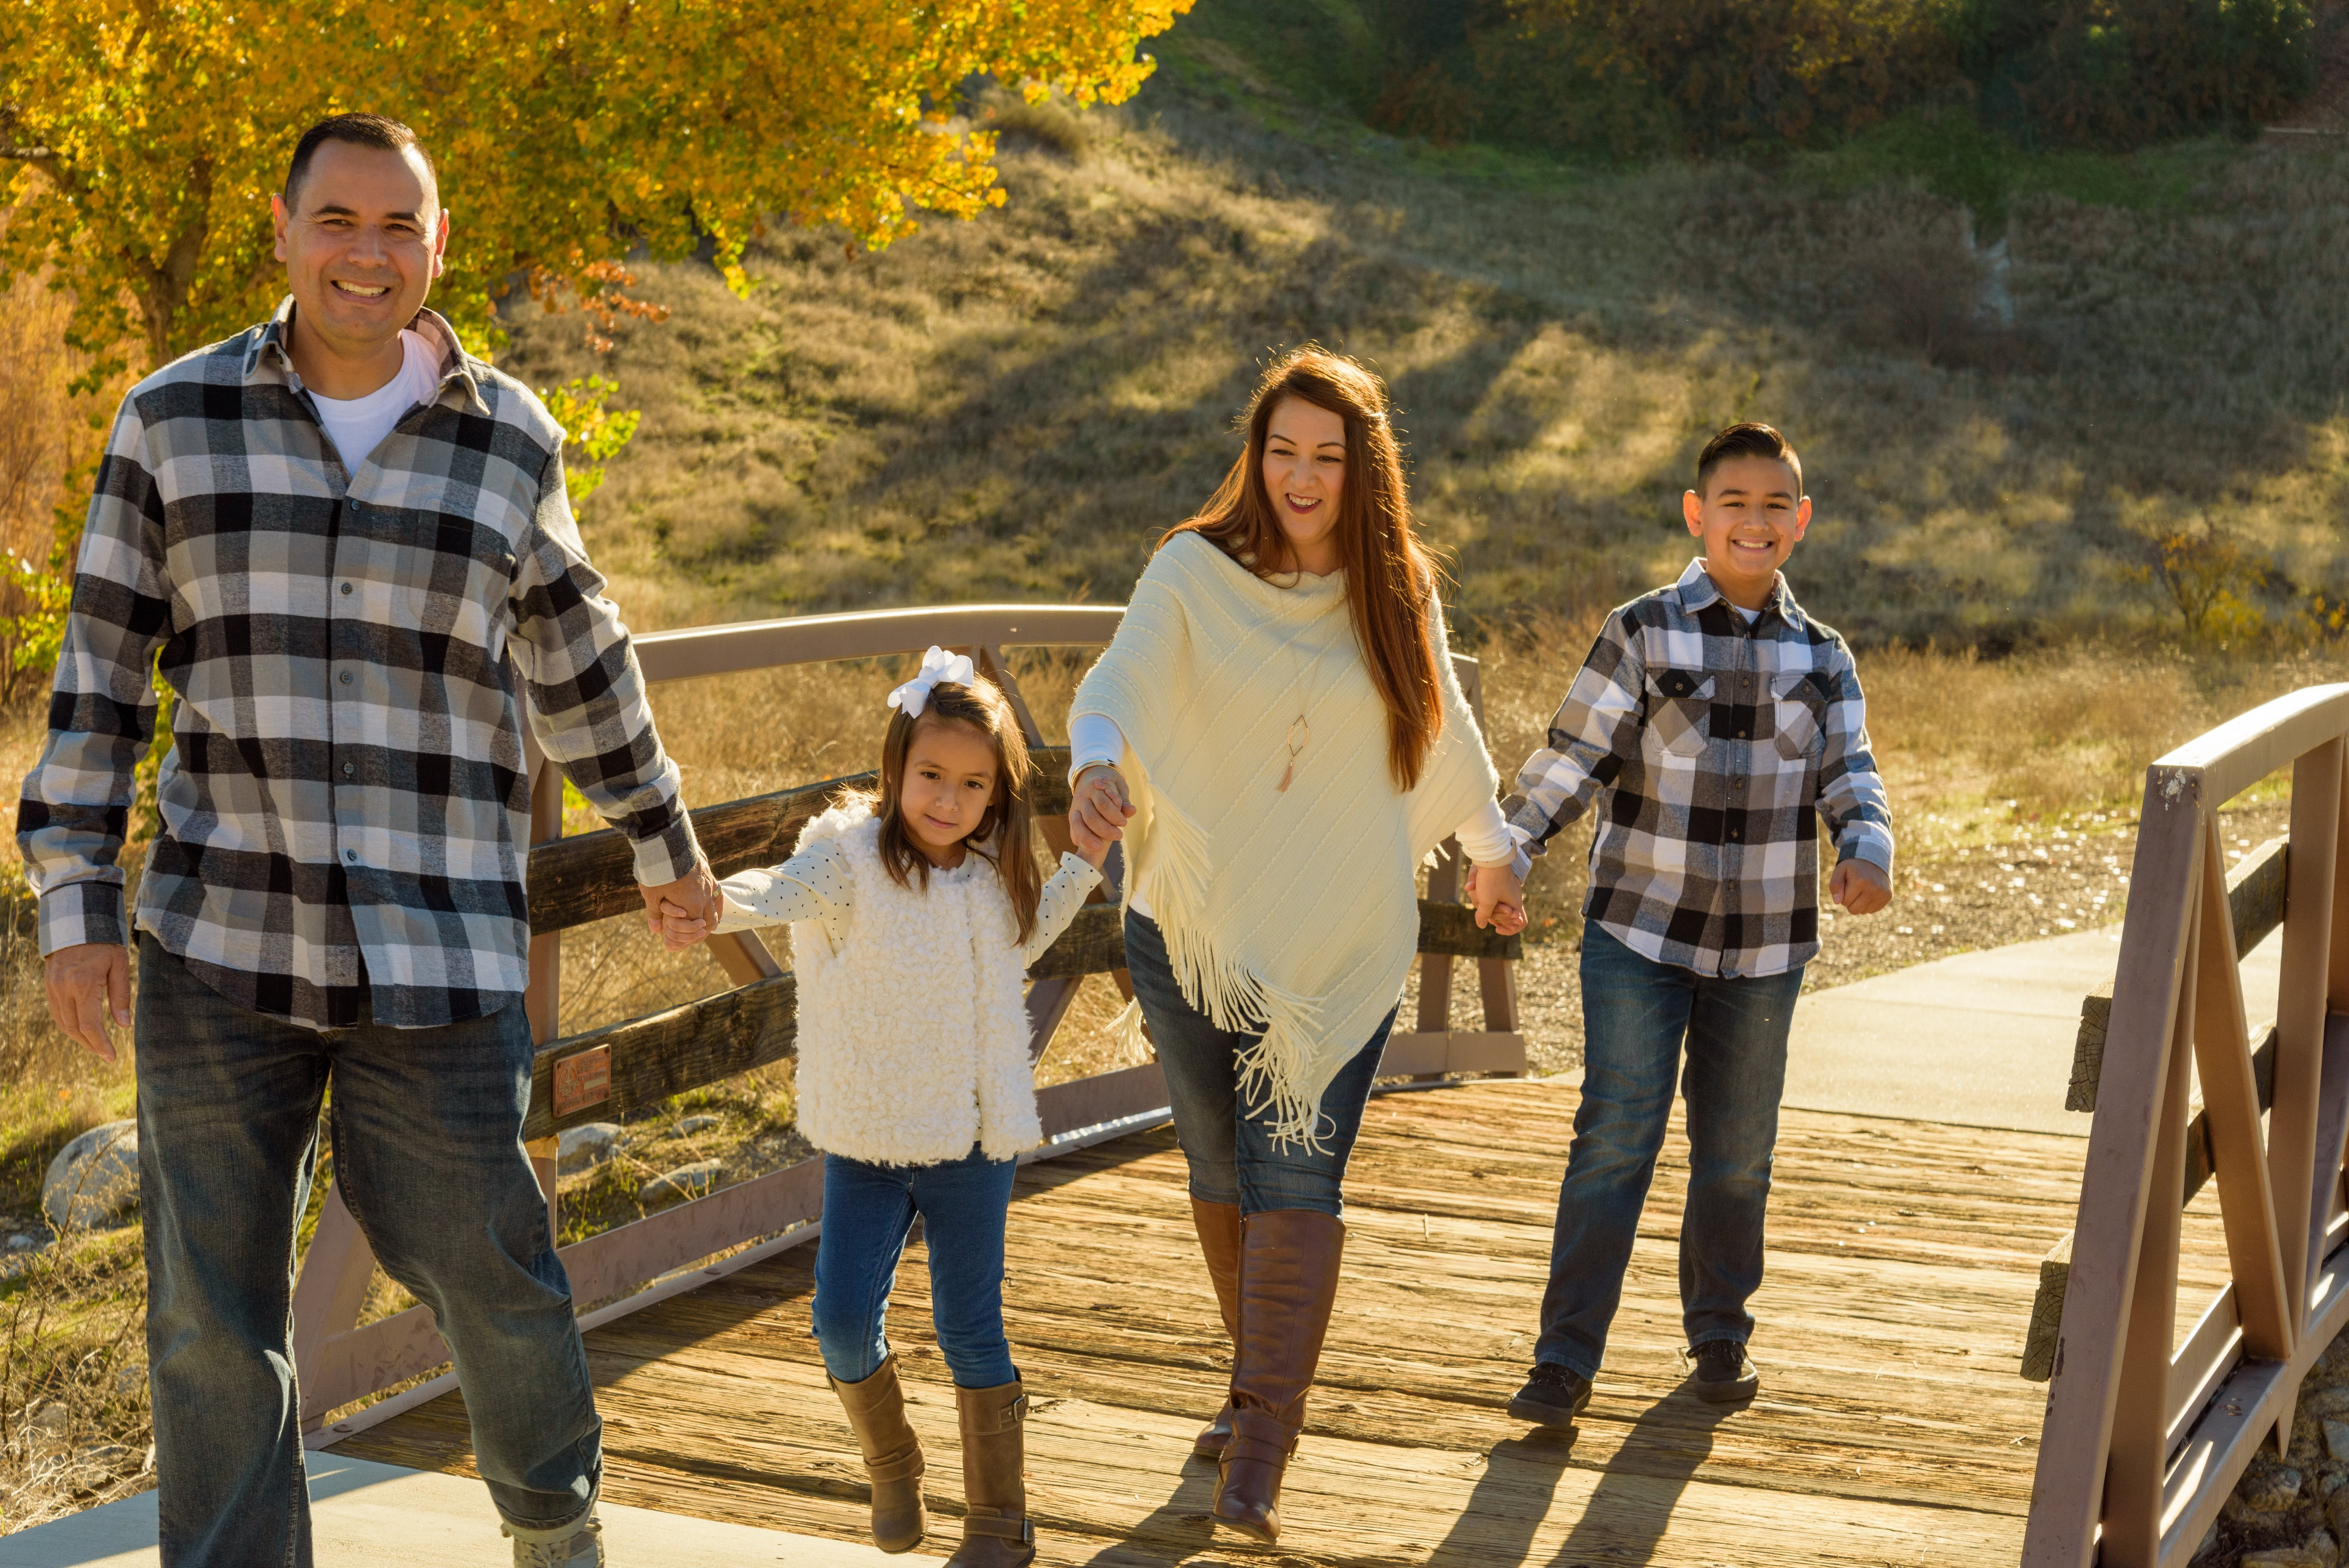 Family portrait taken in Santa Clarita with a family of four including two young children holding hands crossing over a bridge and smiling.